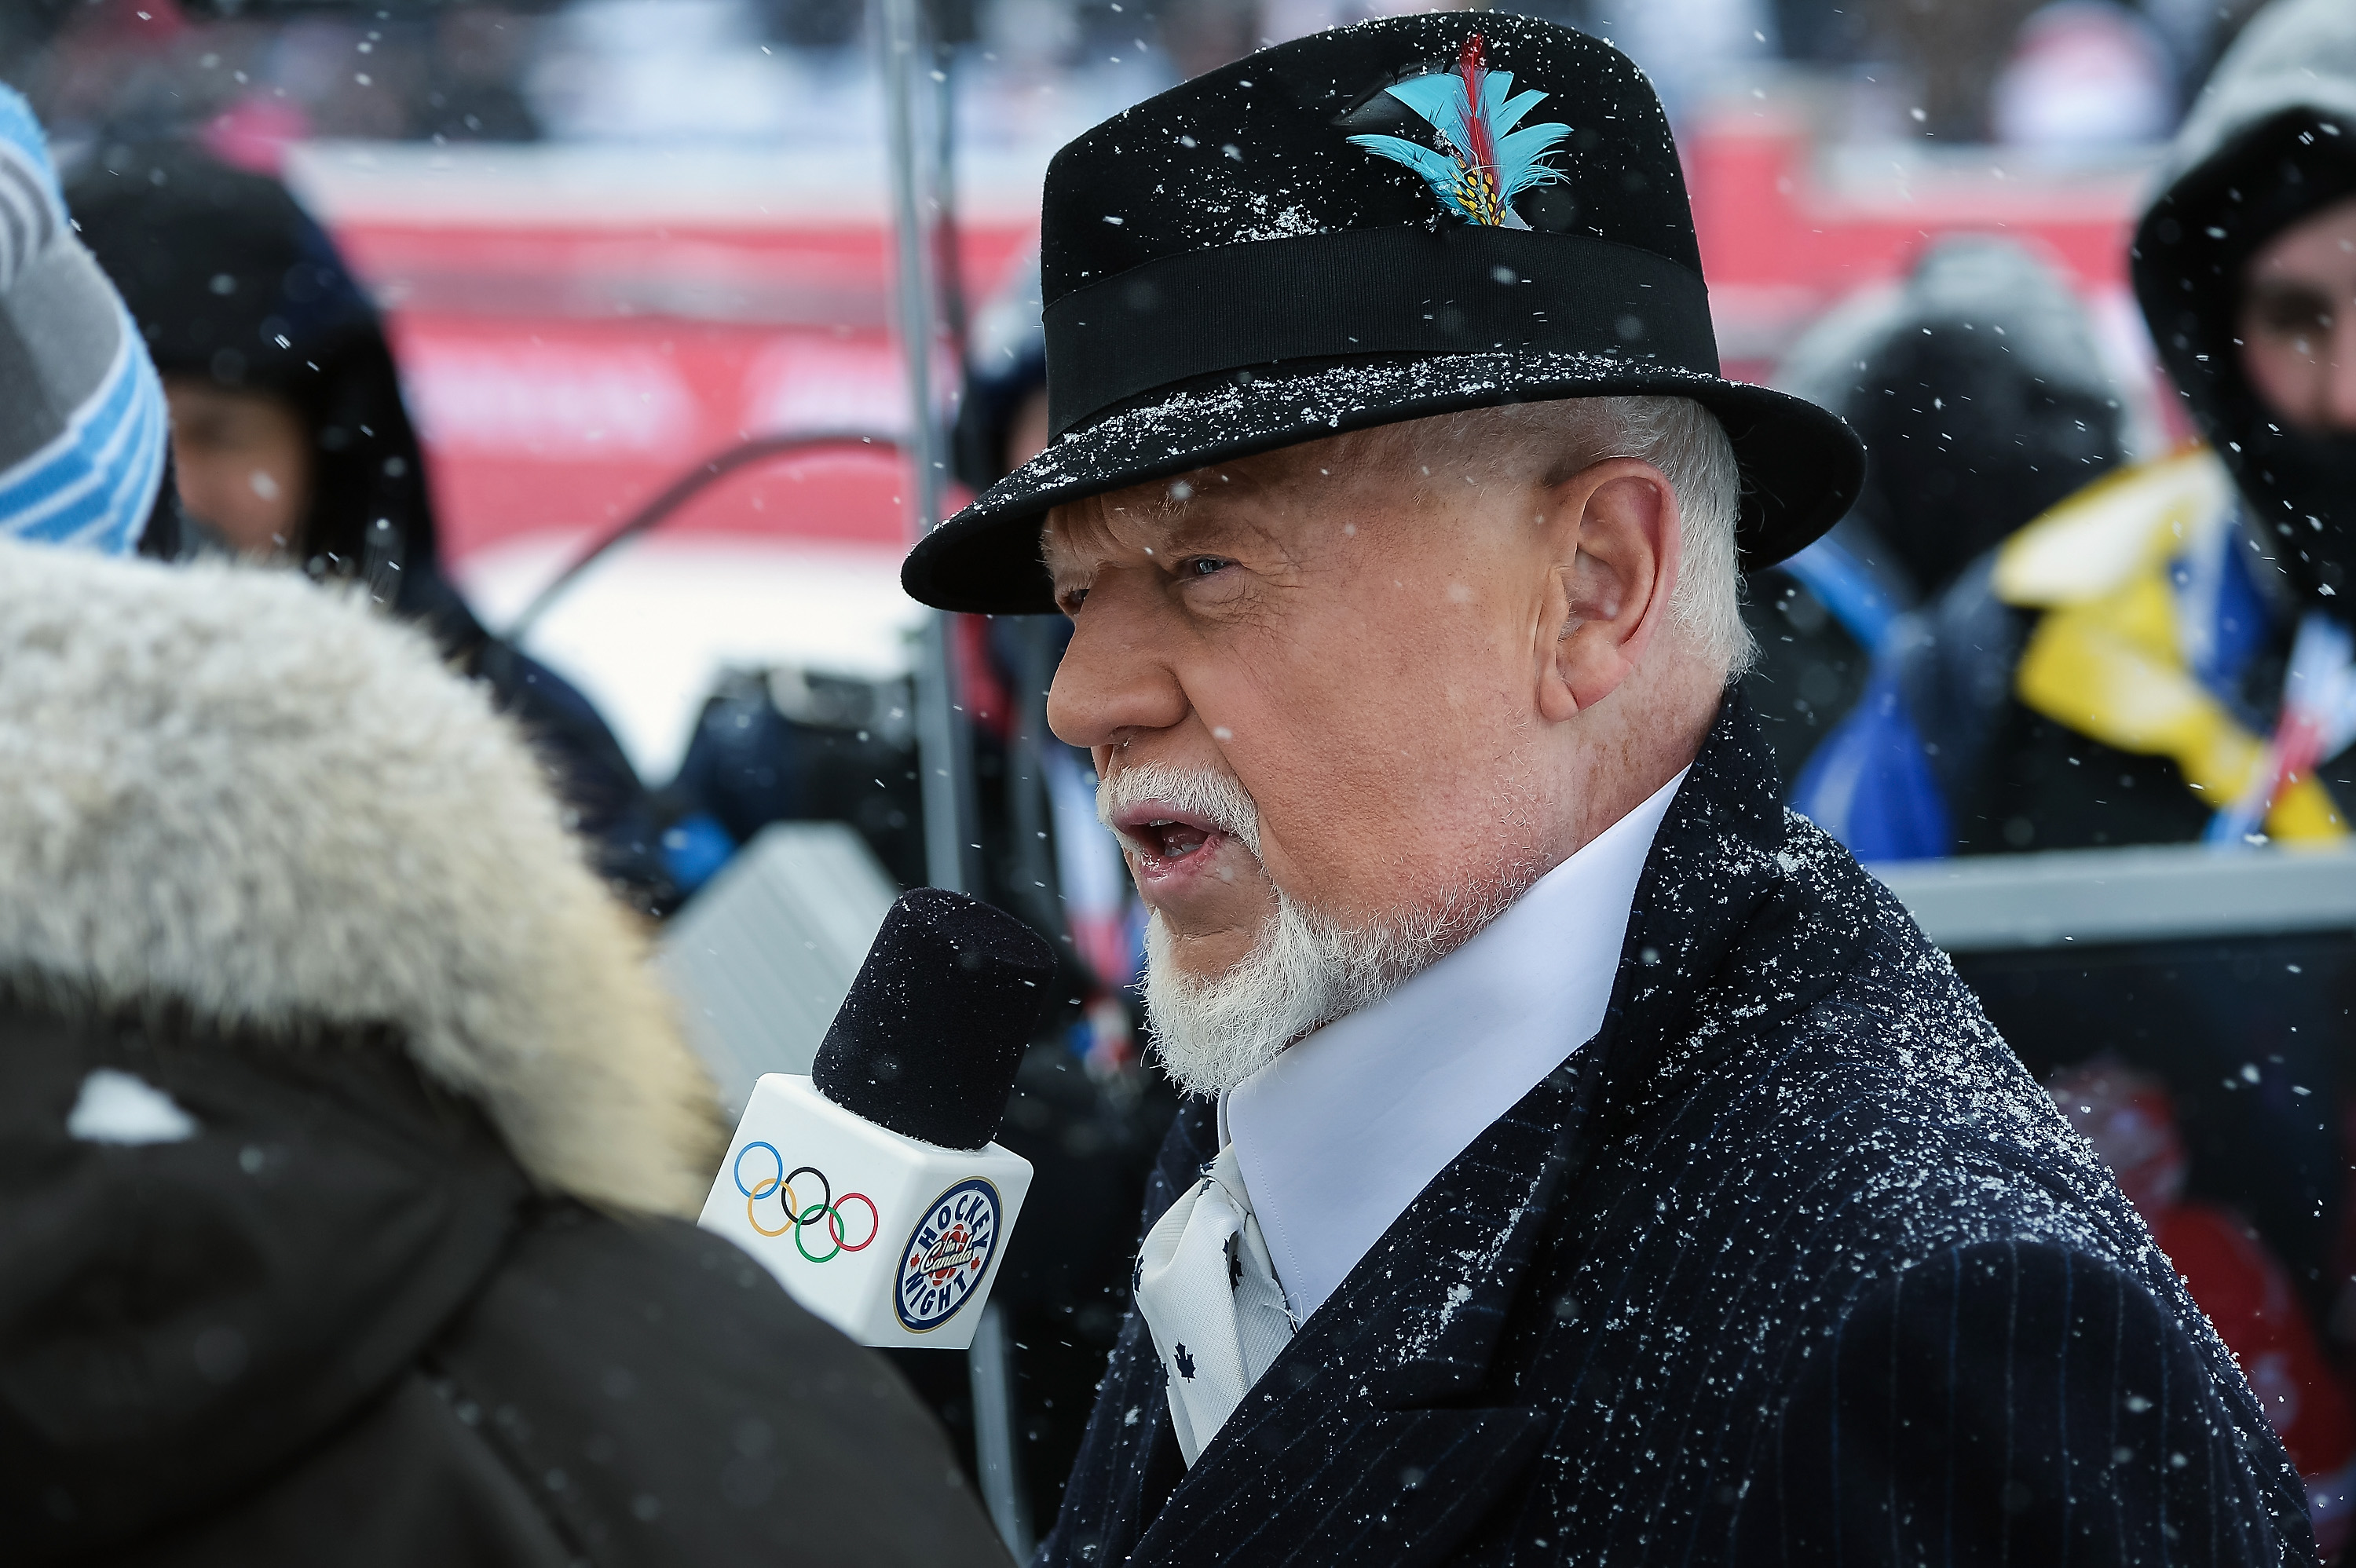 The Skate Podcast: Don Cherry sees a little Orr in Charlie McAvoy